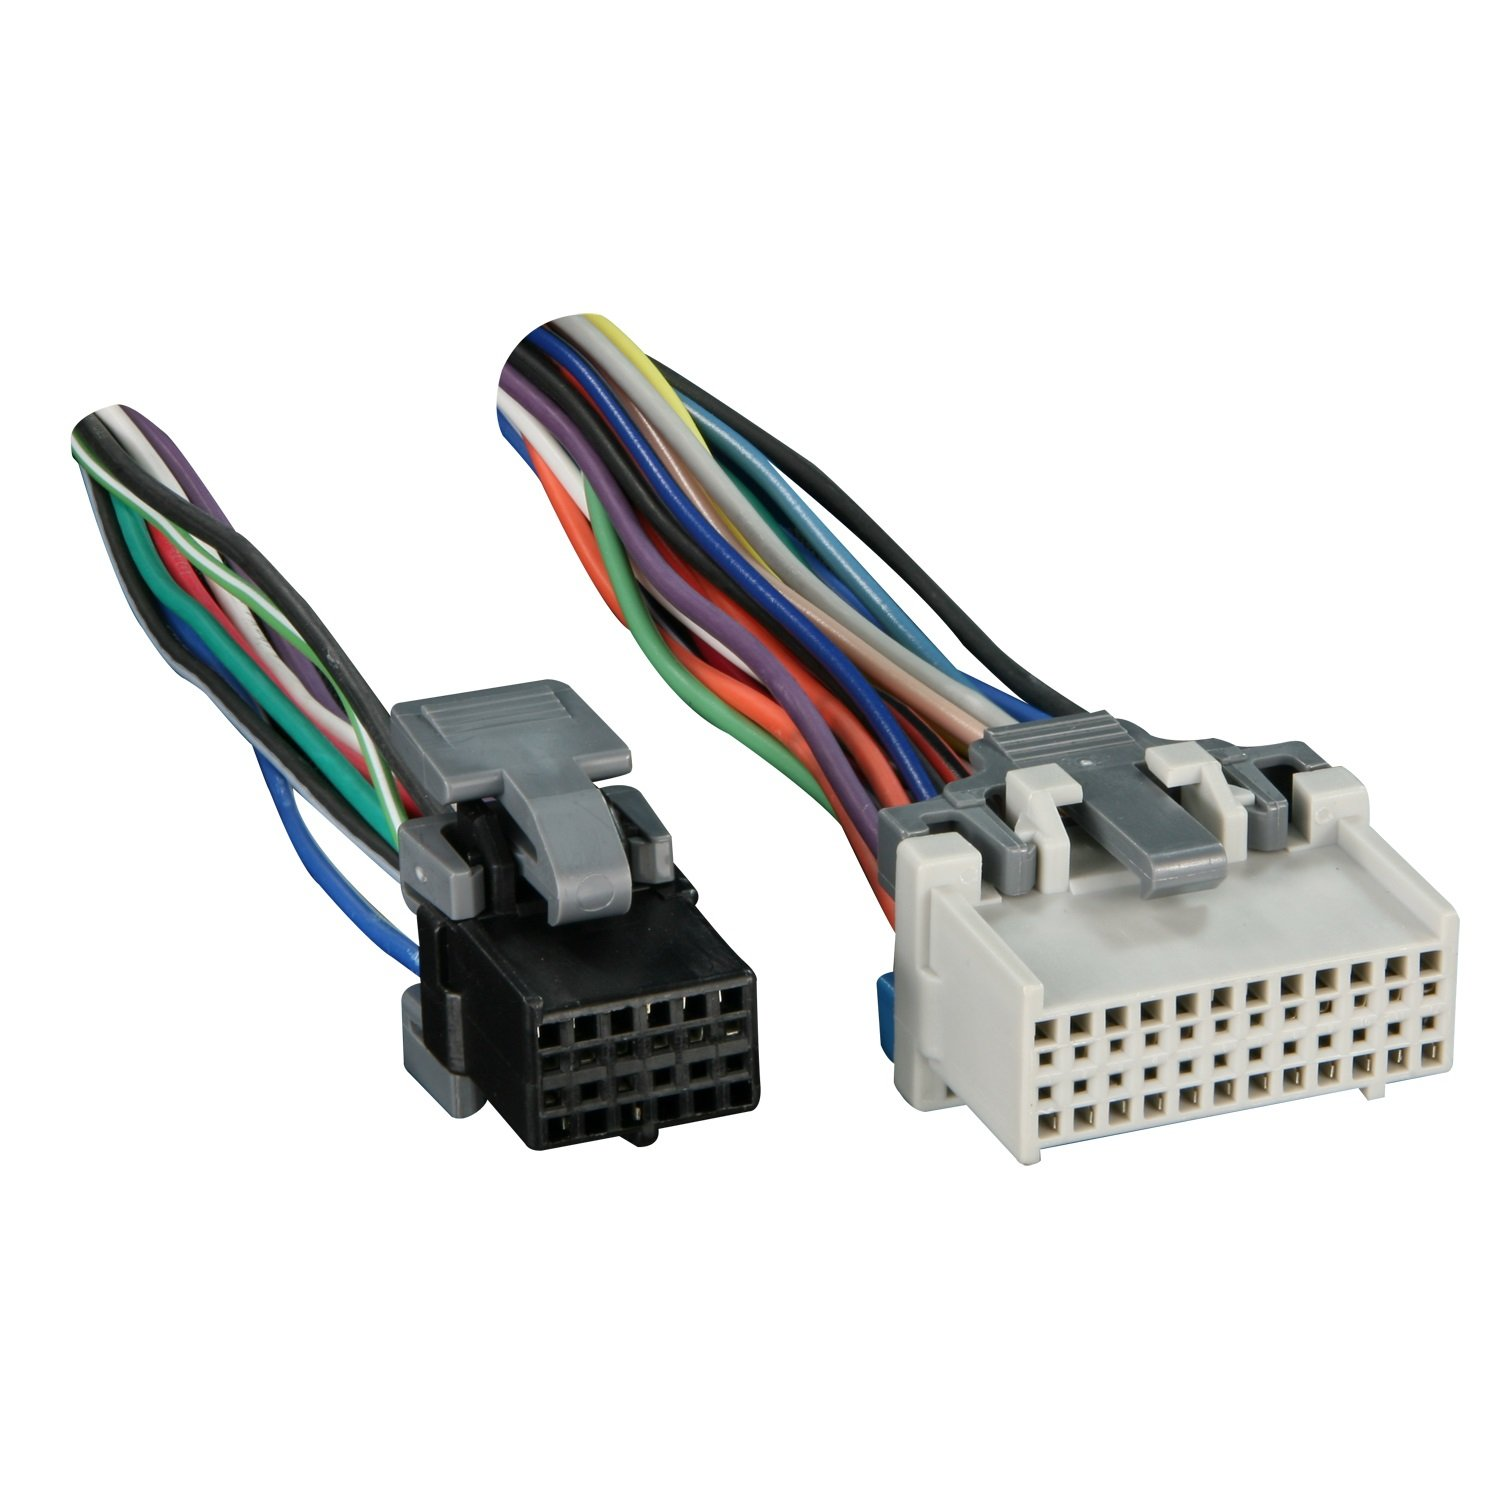 711log4bdML._SL1500_ amazon com wiring harnesses electrical automotive 2003 silverado engine wire harness at mifinder.co